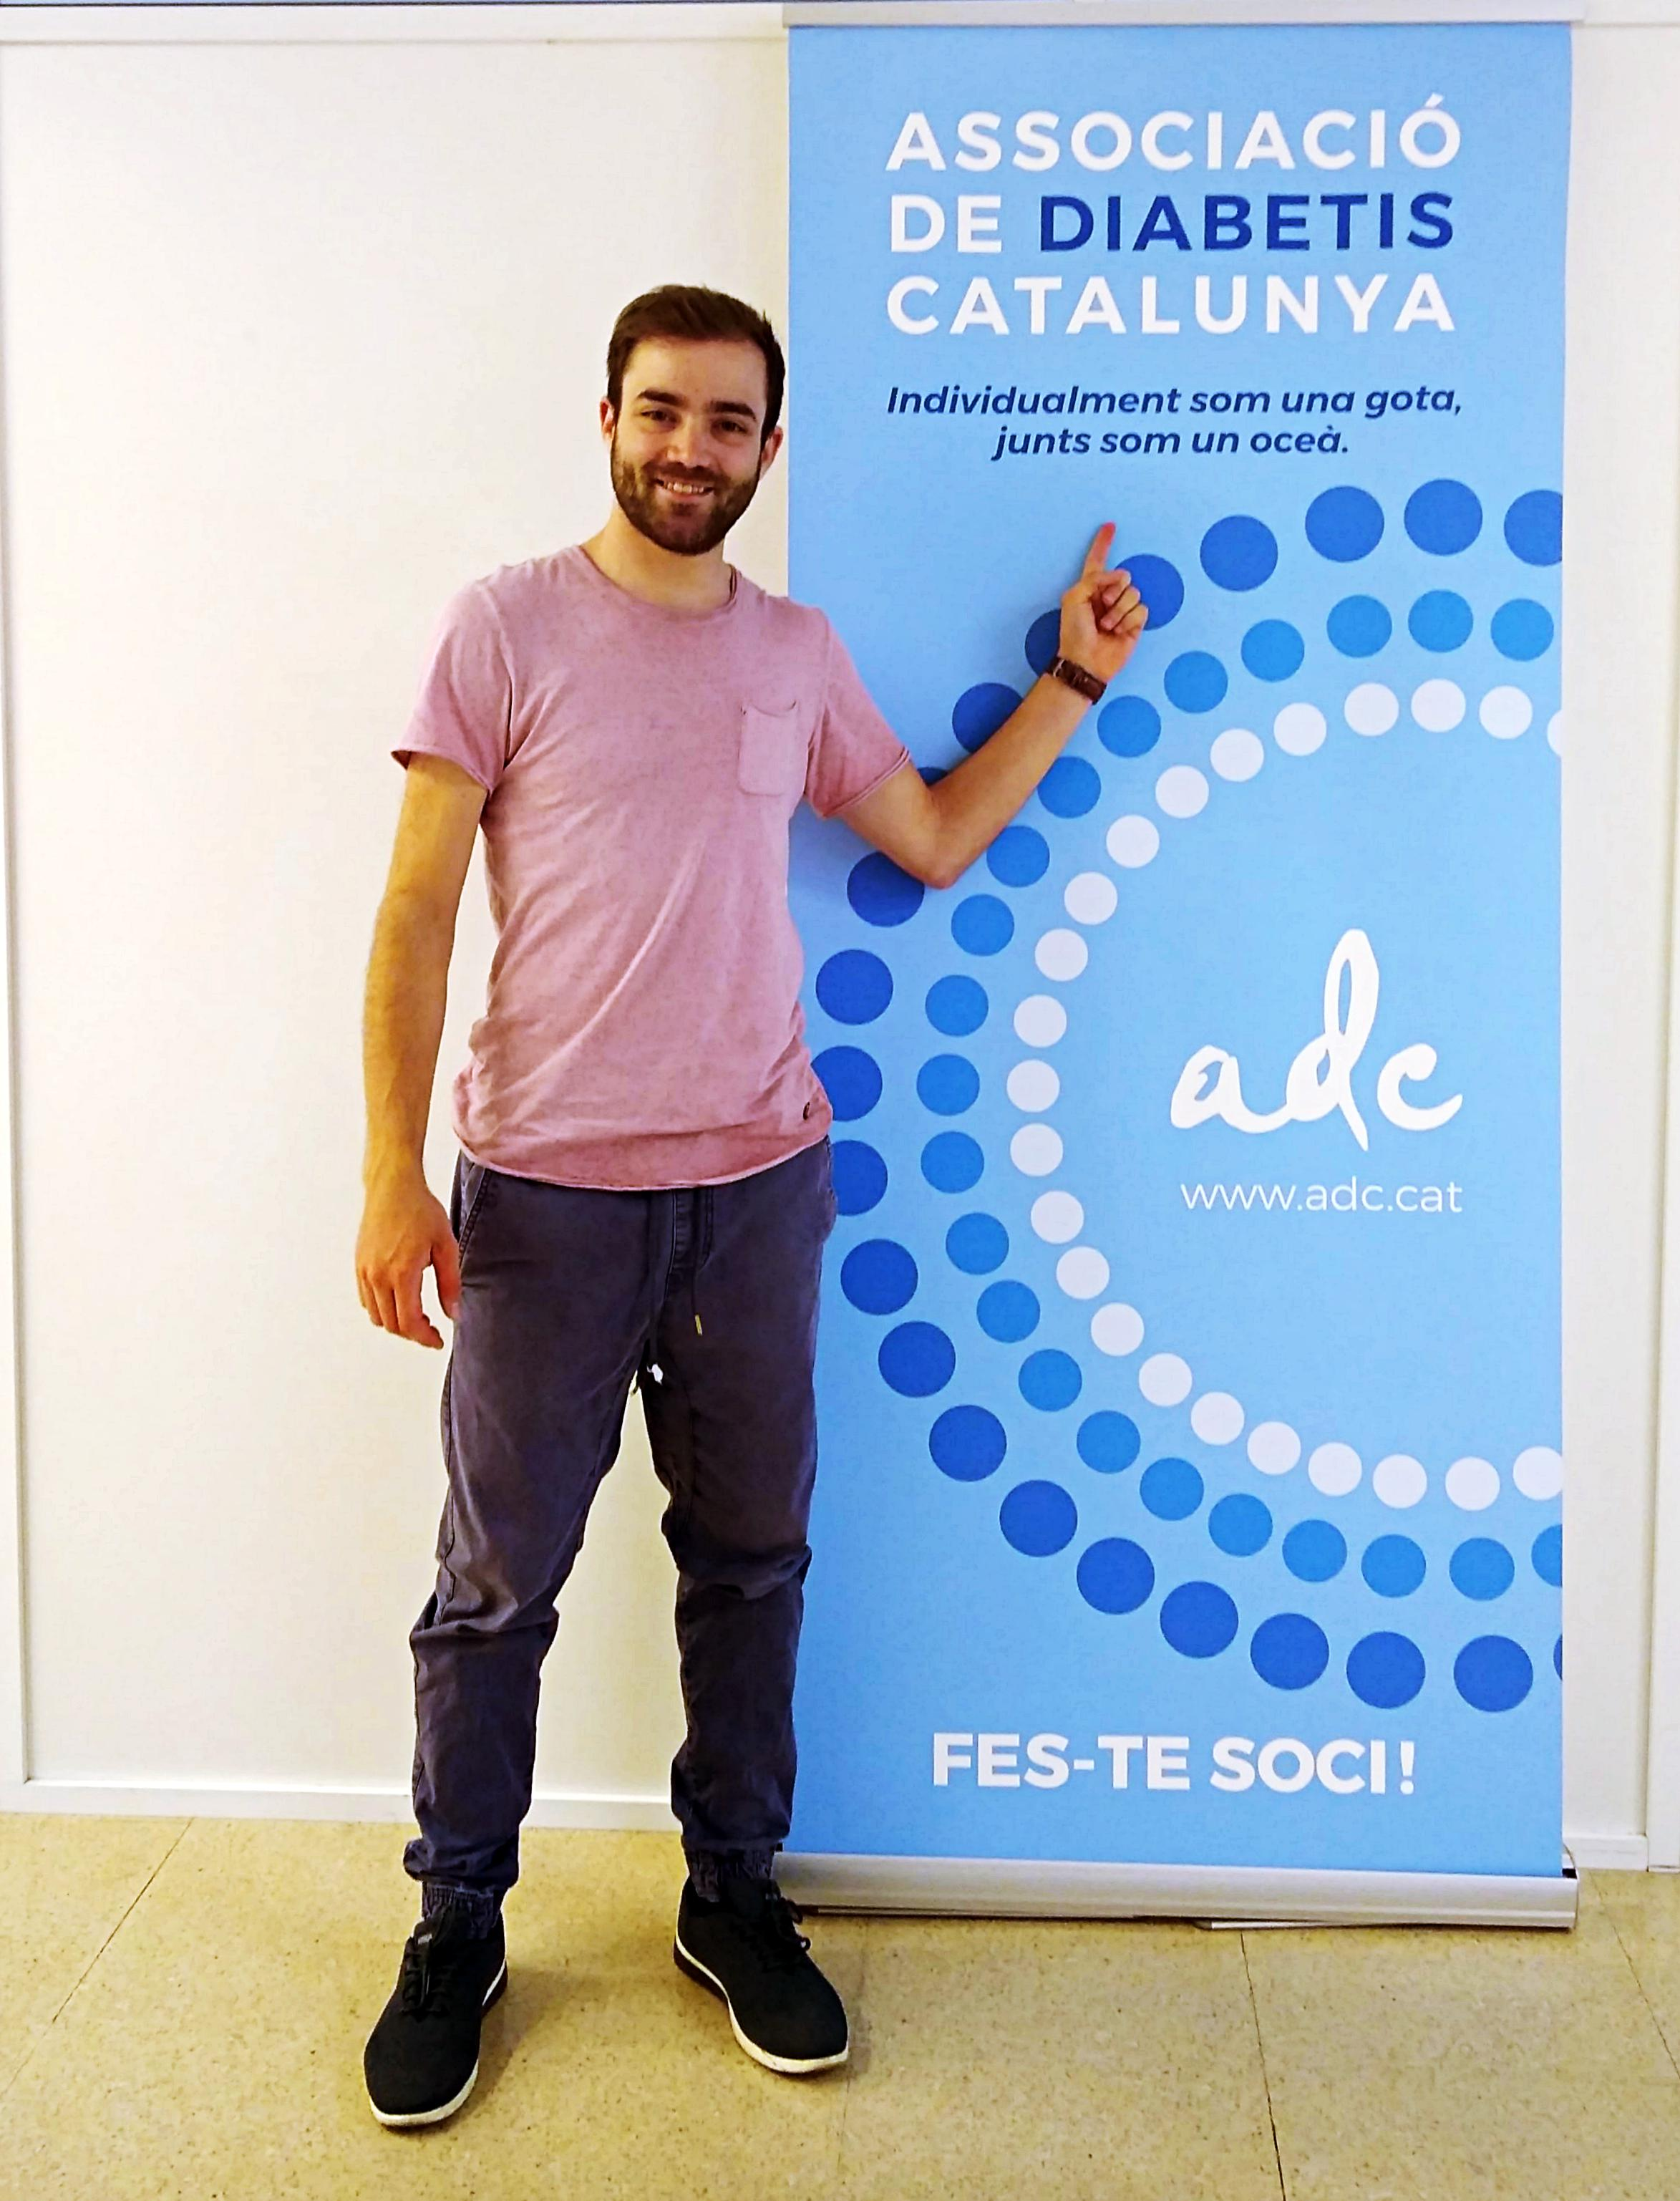 - We need more people involved and more associations collaborating. If we don't work together, we won't get any improvements.(Photo of Brais Dacal at his local association in Barcelona, Spain)